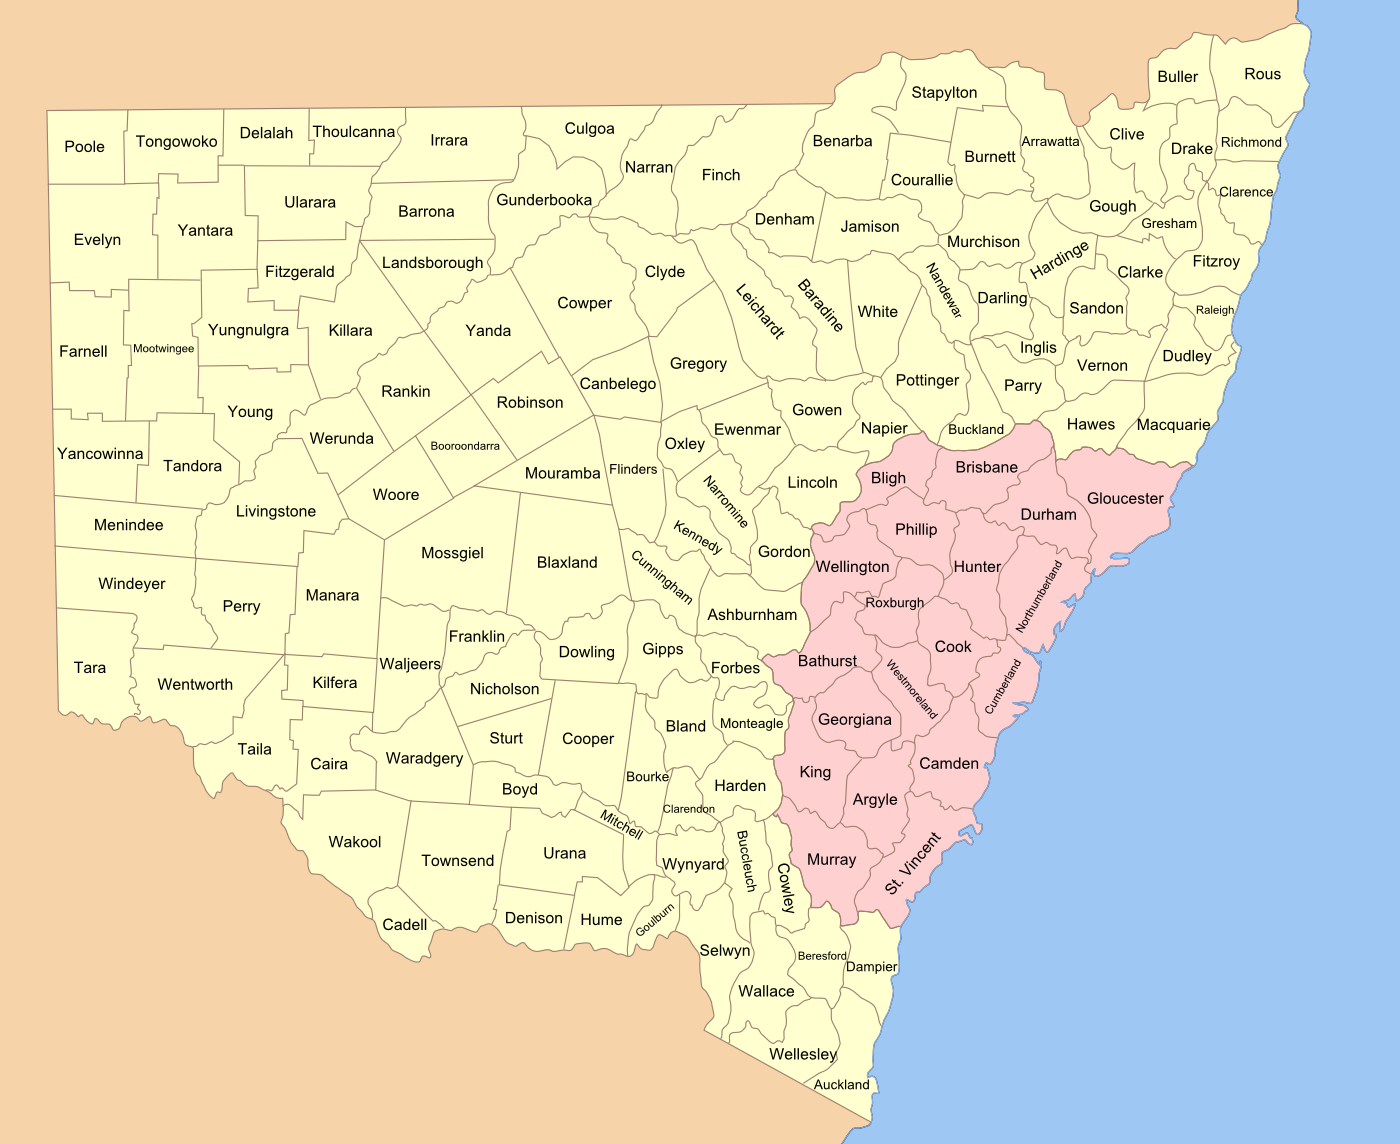 141 counties of New South Wales (before the ACT was